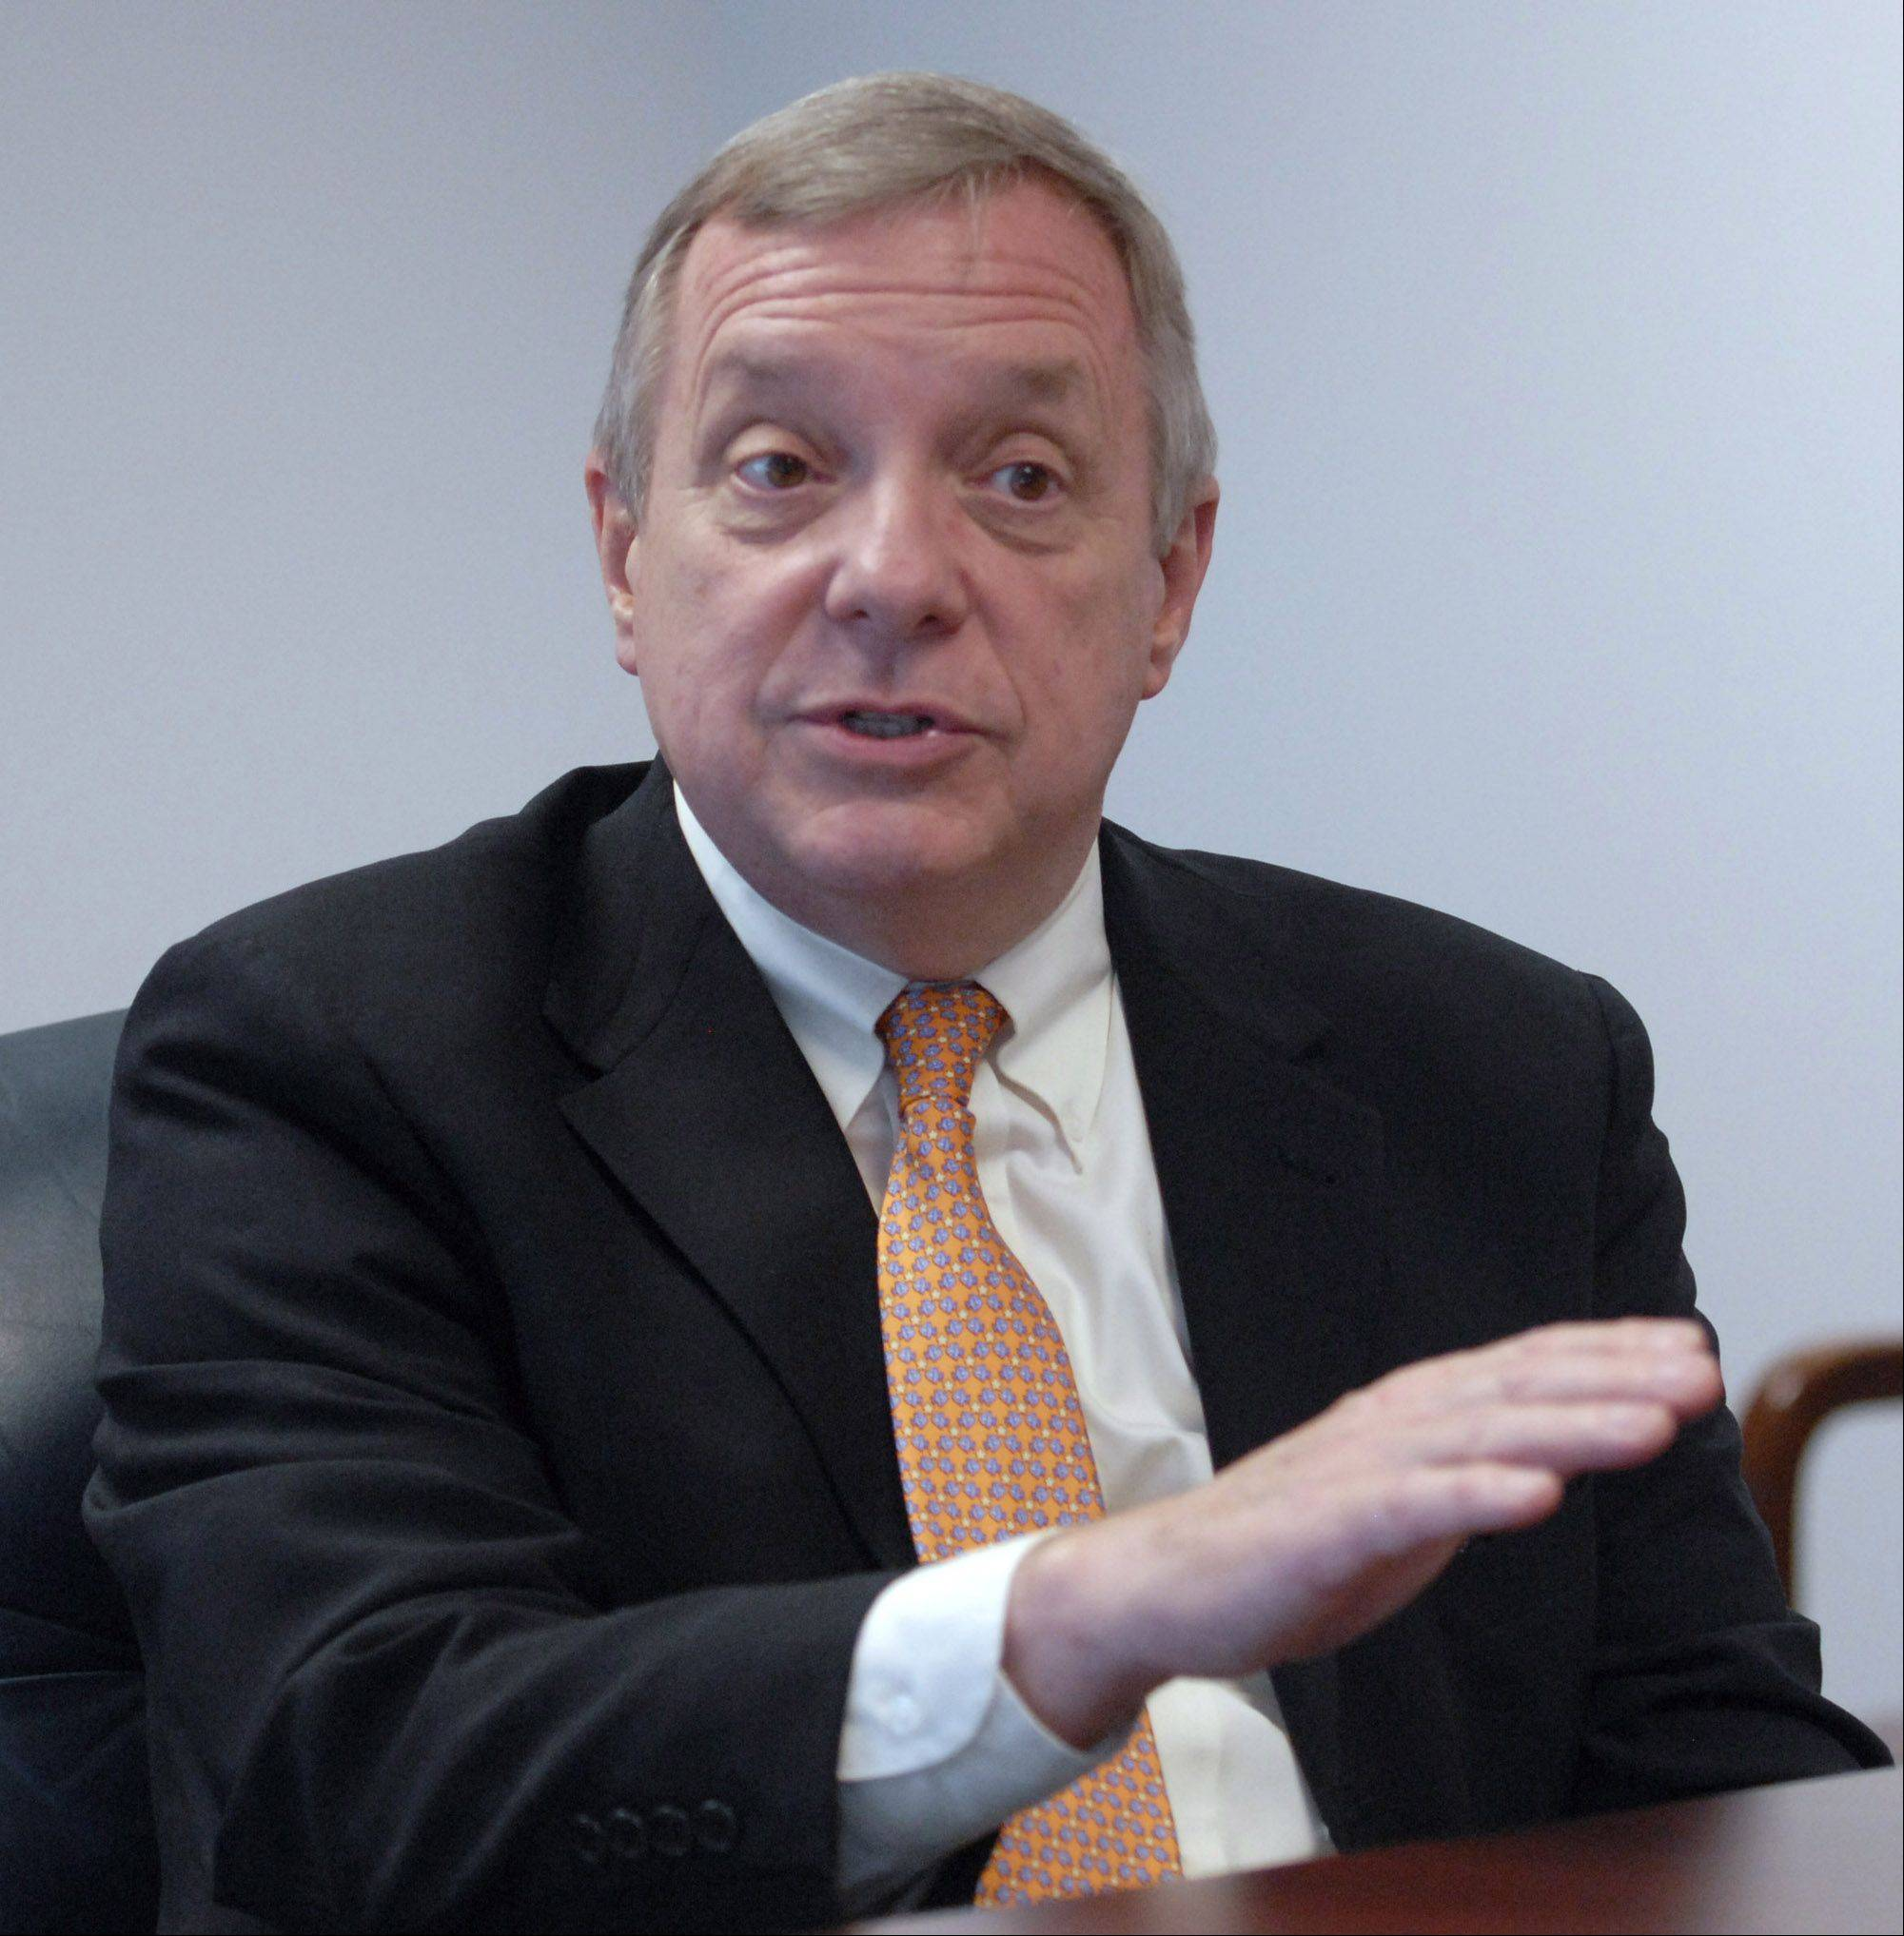 U.S. Senator Dick Durbin was in Schaumburg Tuesday to meet with village and business leaders from Schaumburg, Hoffman Estates and other Northwest suburban communities about economic and workforce development in the region.